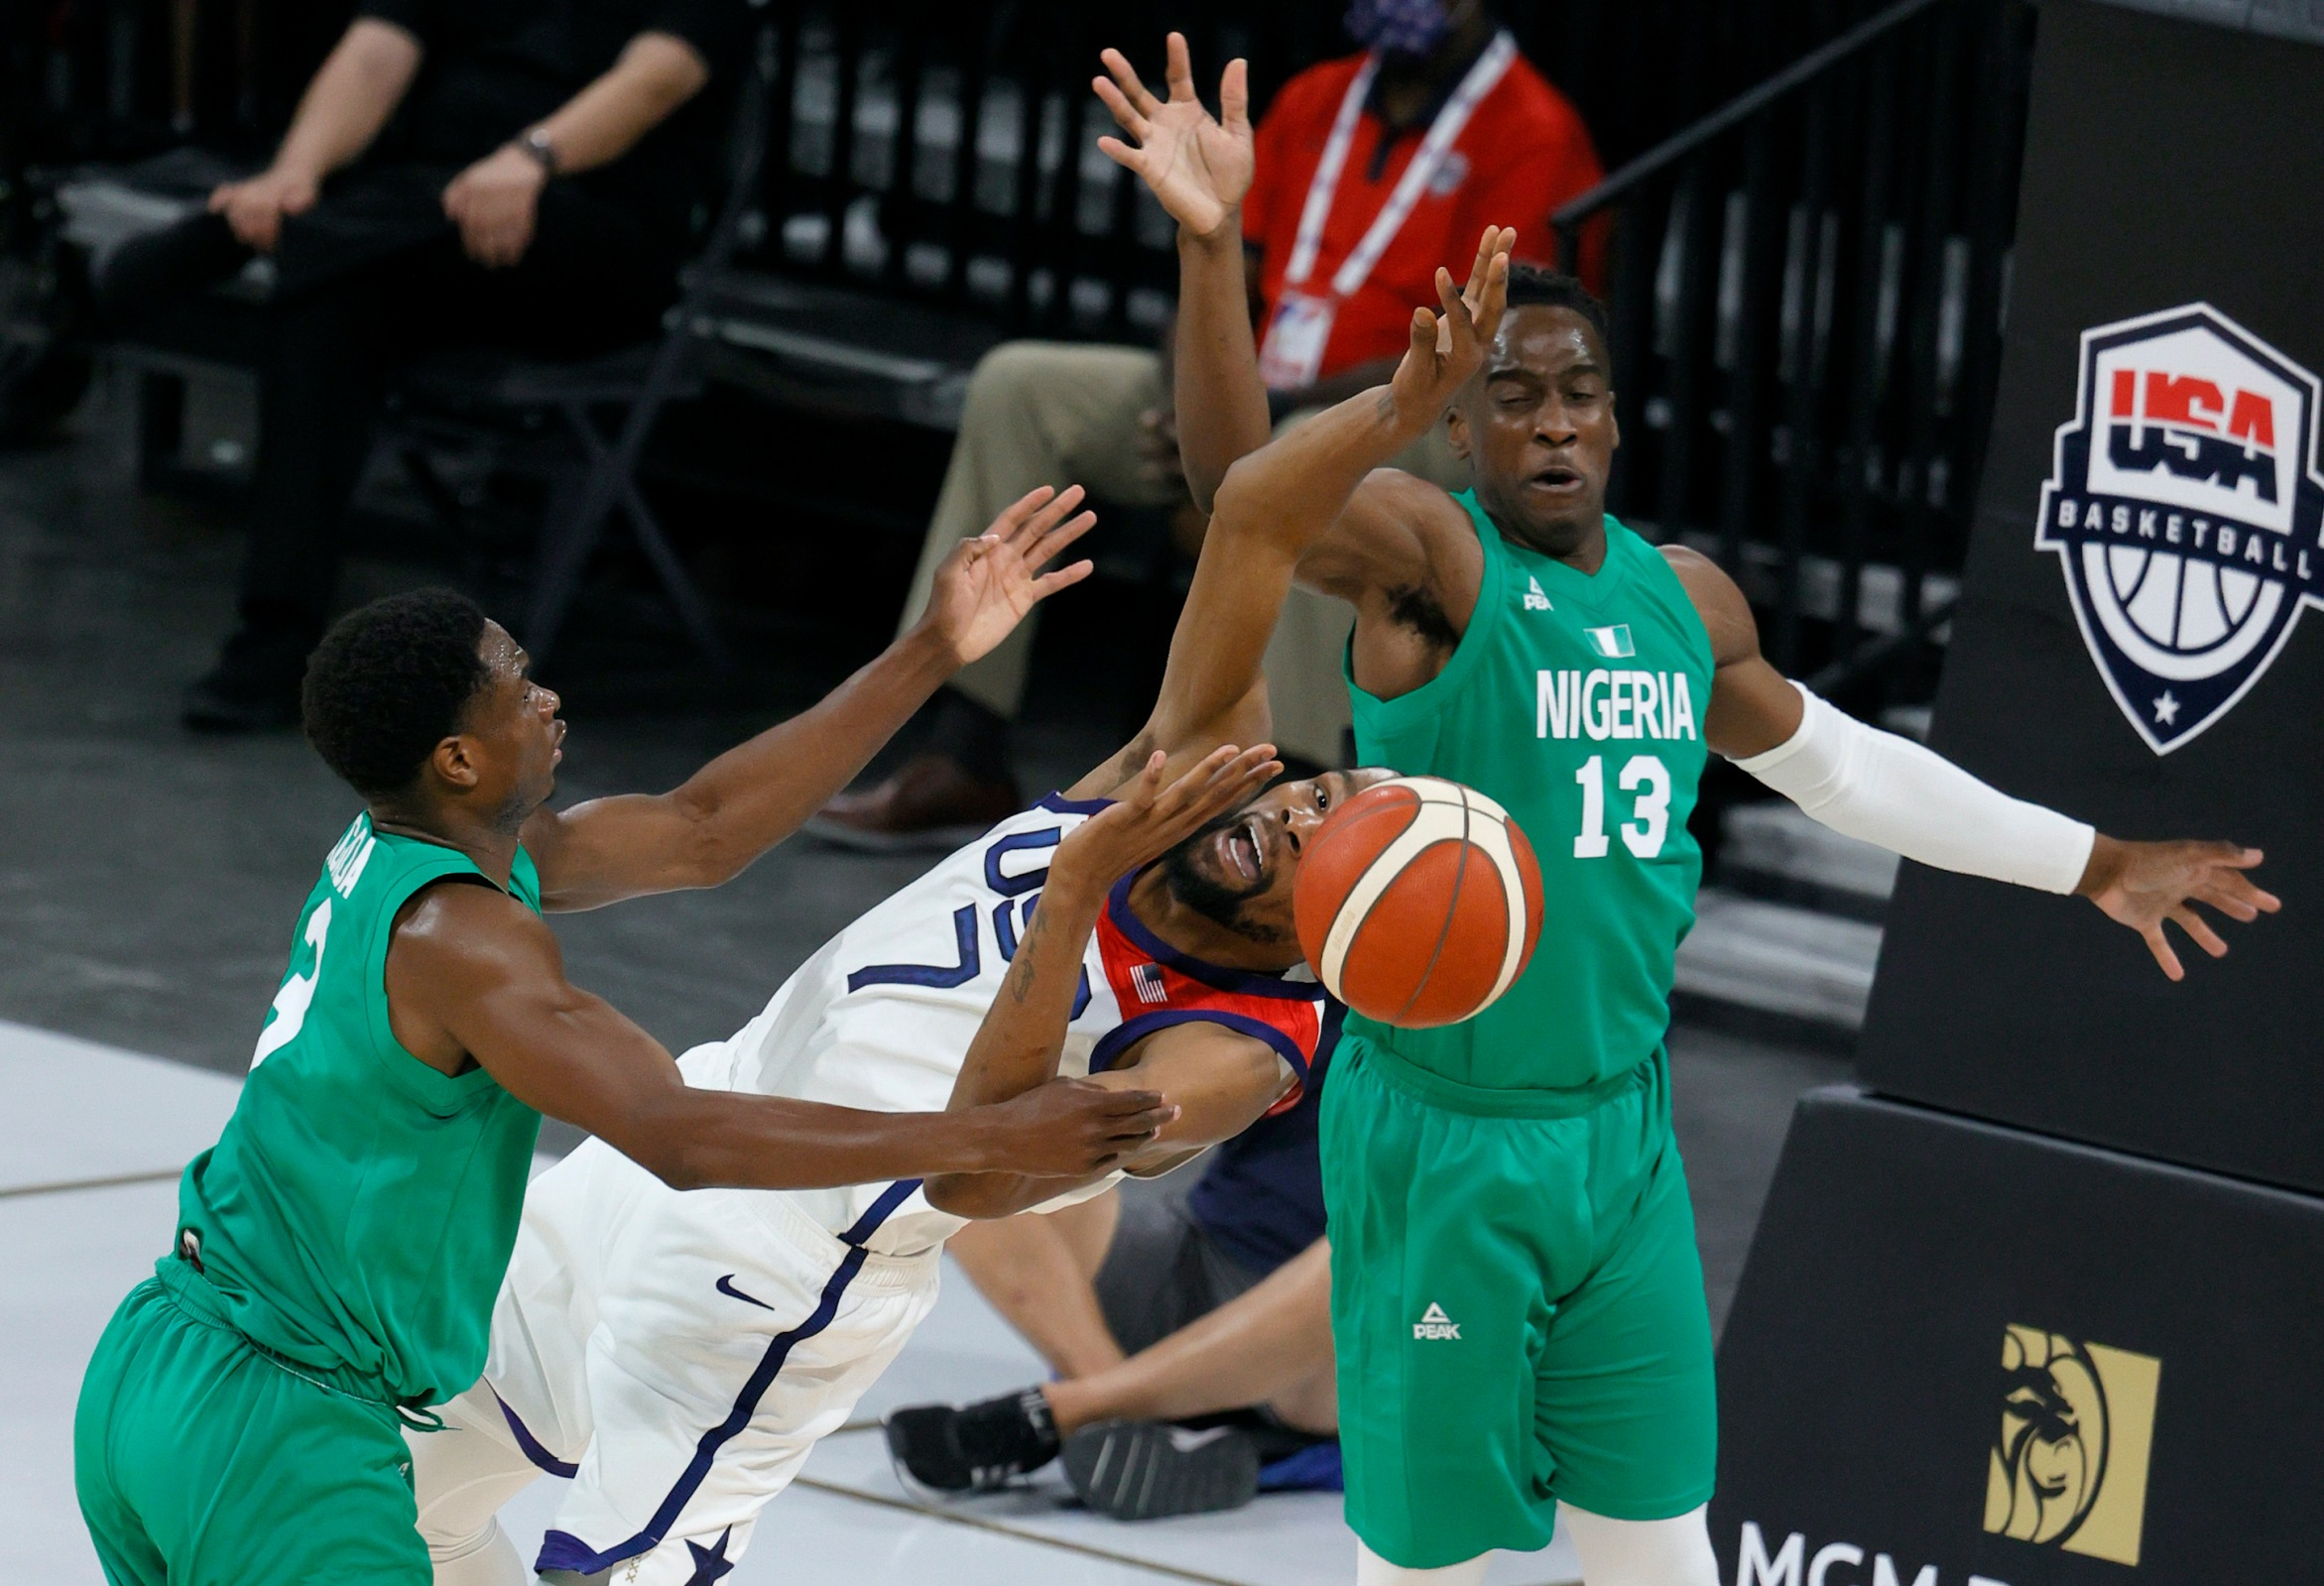 Caleb Agada #3 of Nigeria fouls Kevin Durant #7 of the United States as Miye Oni #13 of Nigeria defends during an exhibition game at Michelob ULTRA Arena ahead of the Tokyo Olympic Games on July 10, 2021 in Las Vegas, Nevada.